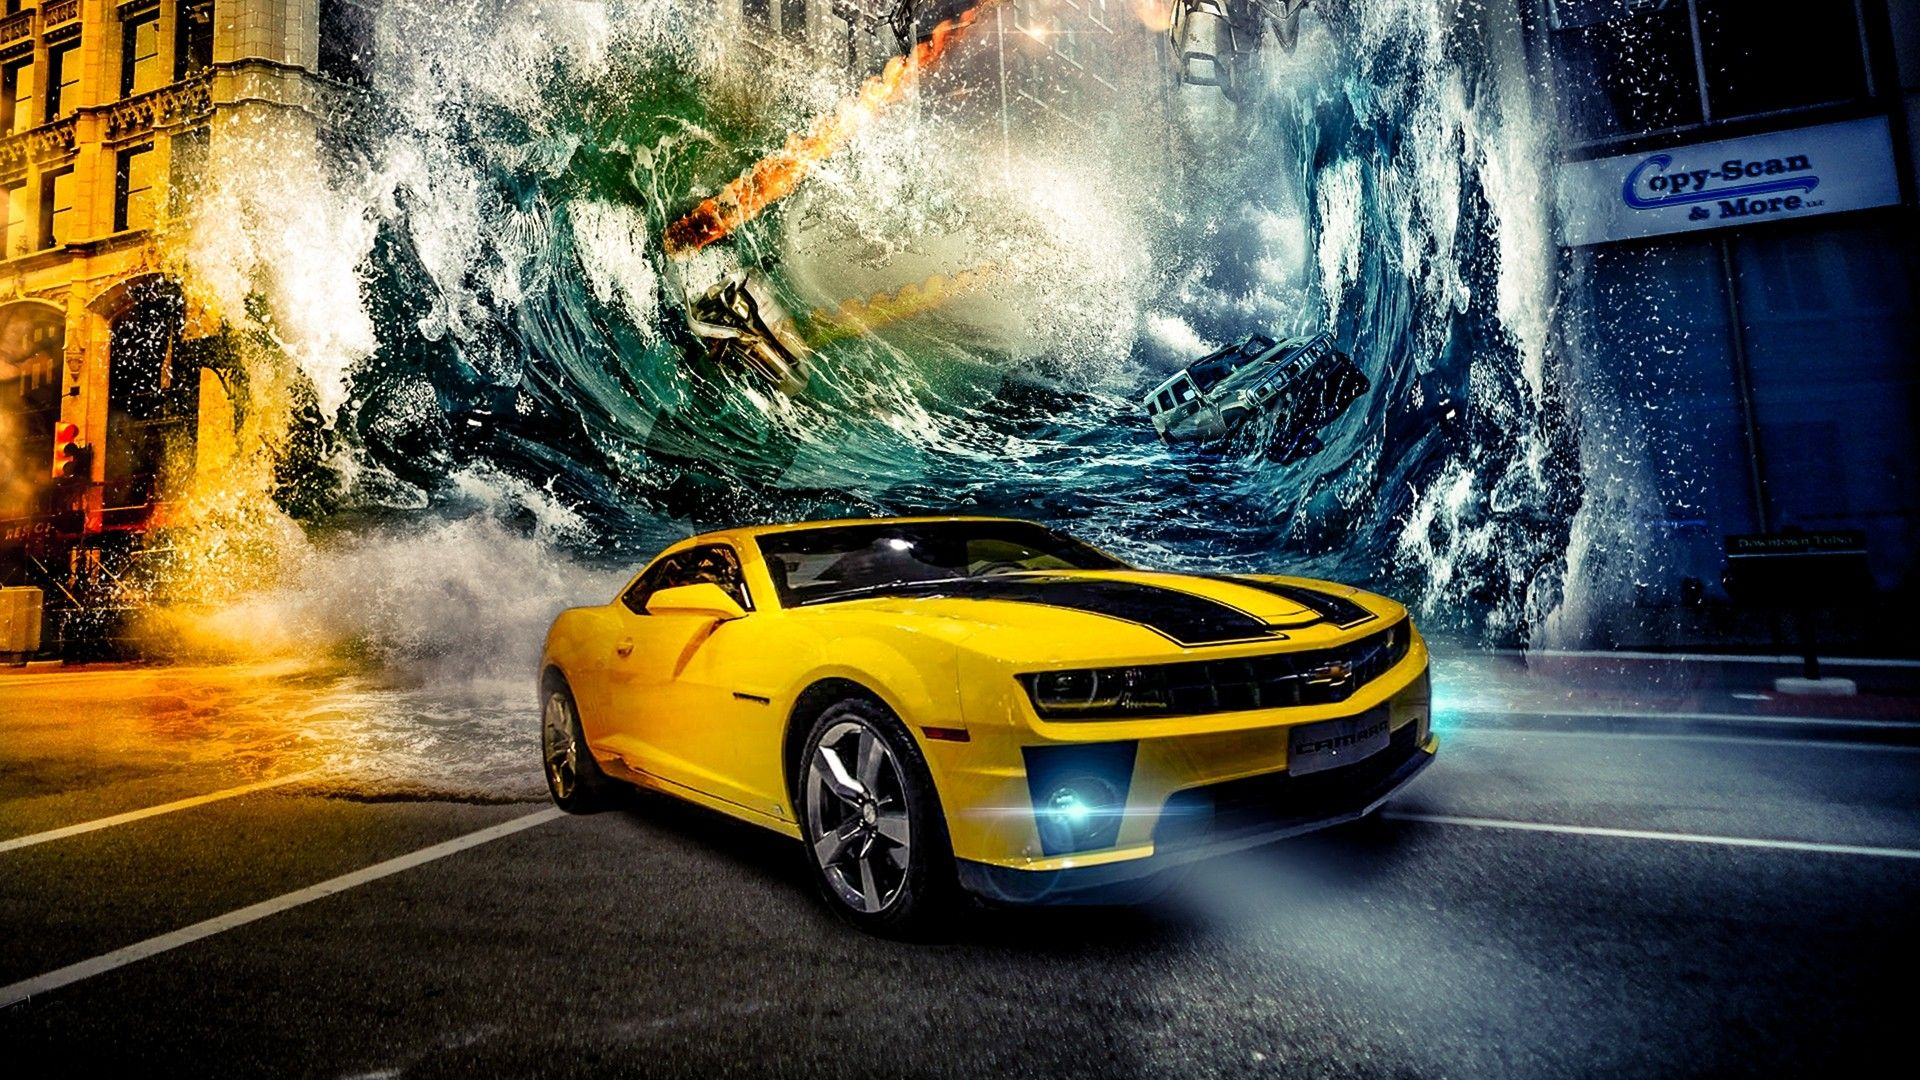 Yellow Car Wallpaper Hd Camaro Chevrolet Wallpaper Car Wallpapers